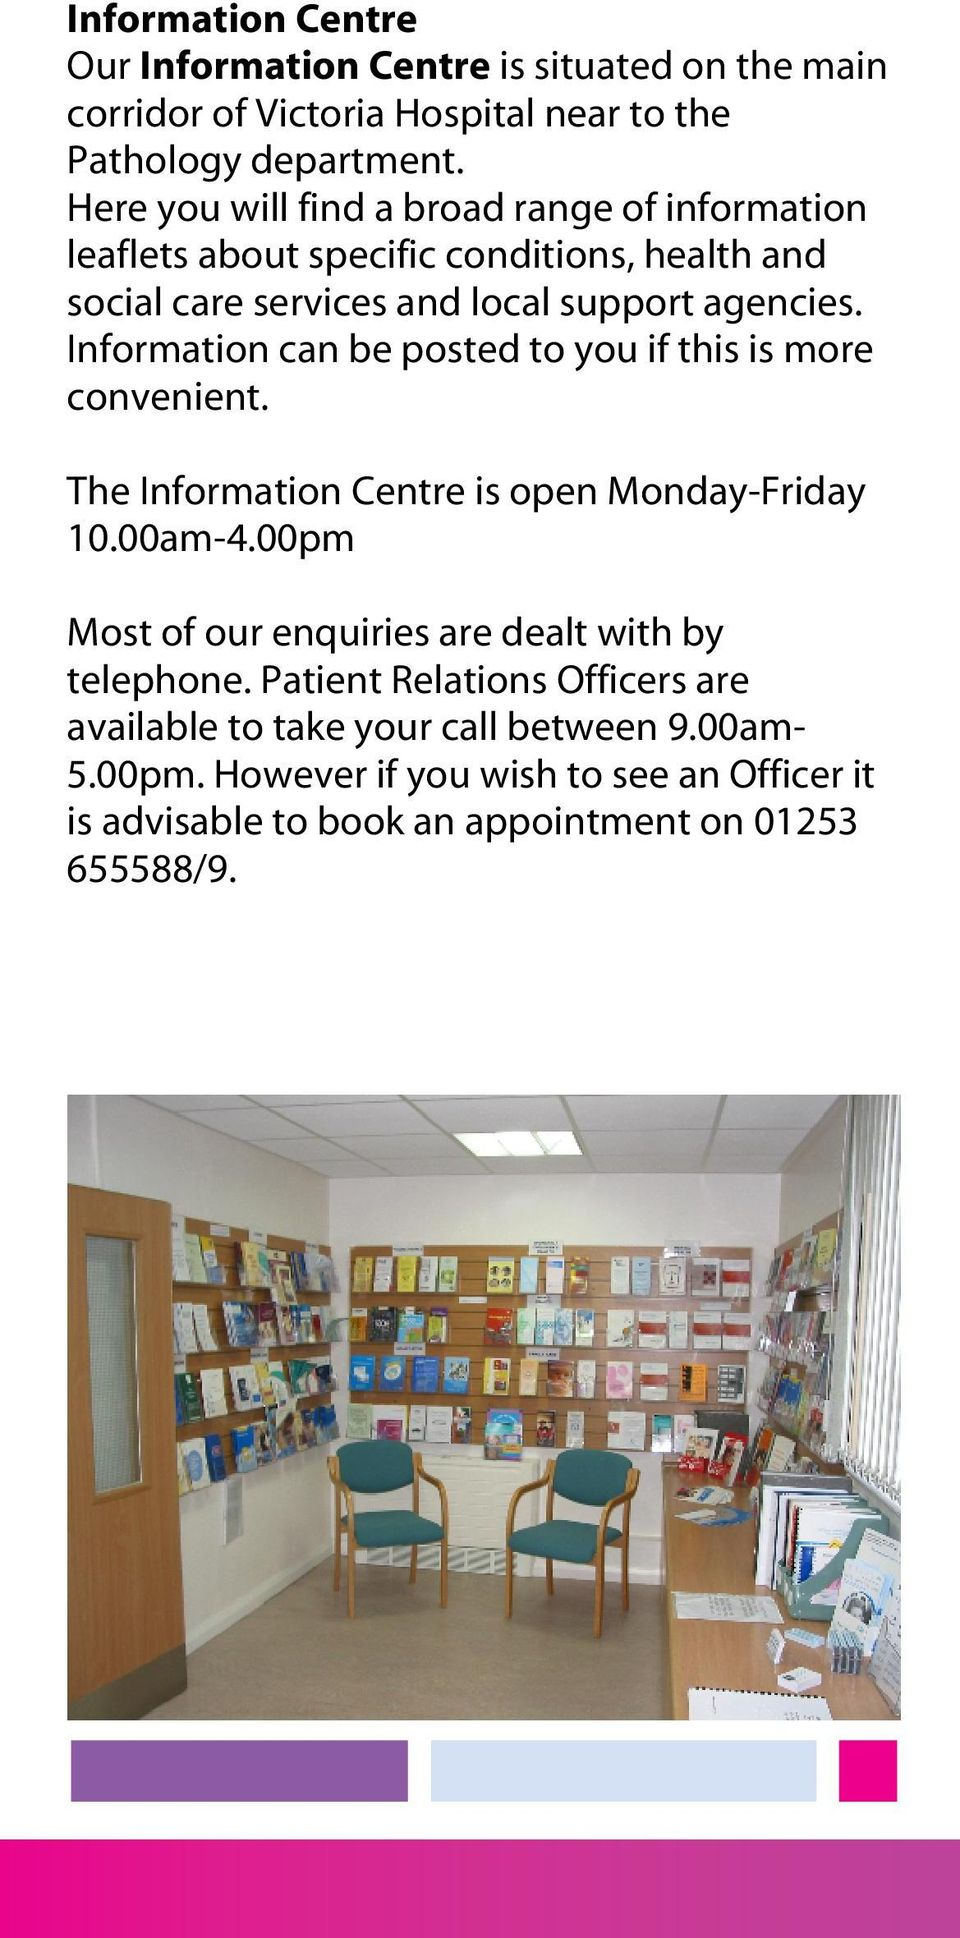 Information can be posted to you if this is more convenient. The Information Centre is open Monday-Friday 10.00am-4.